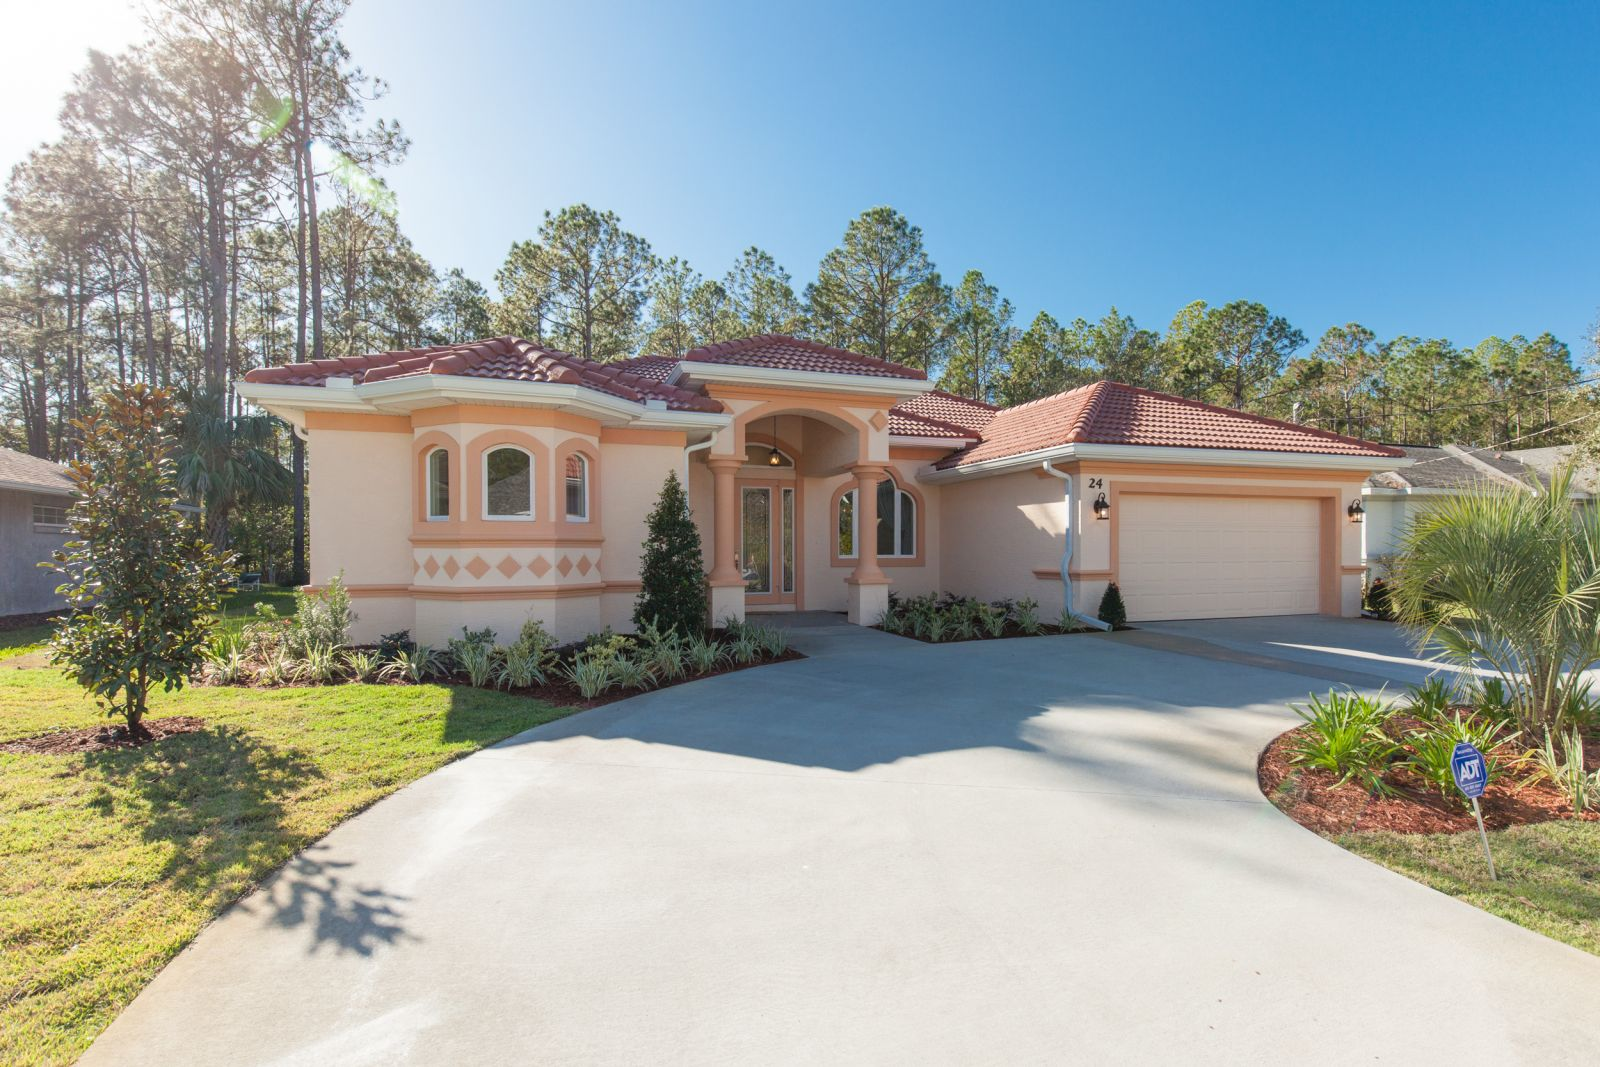 24 Eastland Lane in Palm Coast, FL